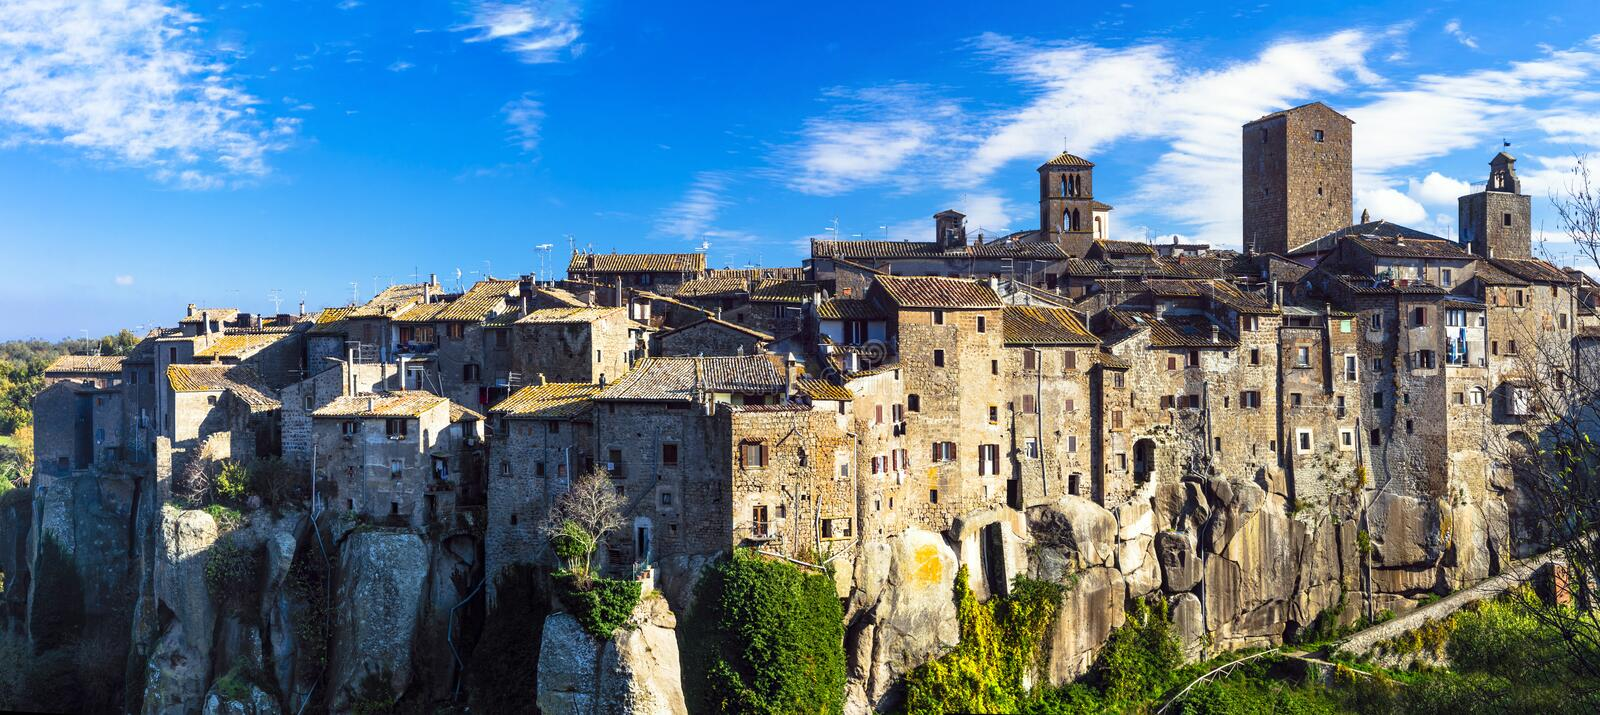 Beauiful medieval villages of Italy -Vitochiano. Most beauiful medieval villages of Italy -Vitochiano (Viterbo province stock photography